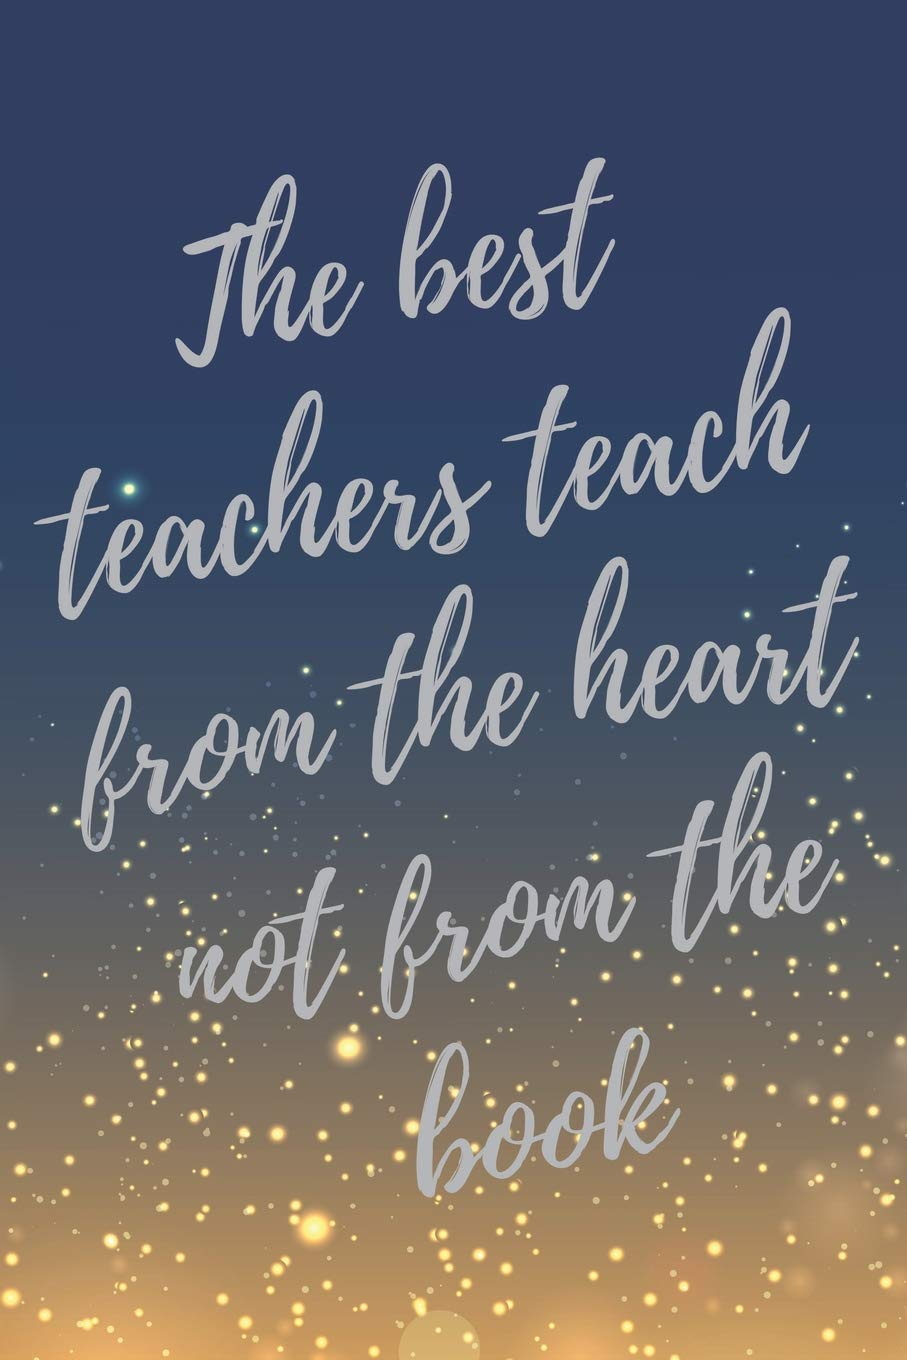 Amazon.com: The best teachers teach from the heart not from the book.:  Super Teacher Inspirational Quotes Journal & Notebook (Appreciate Gift for  Teachers) (9781077557642): Inspiration Journal, Everyday: Books